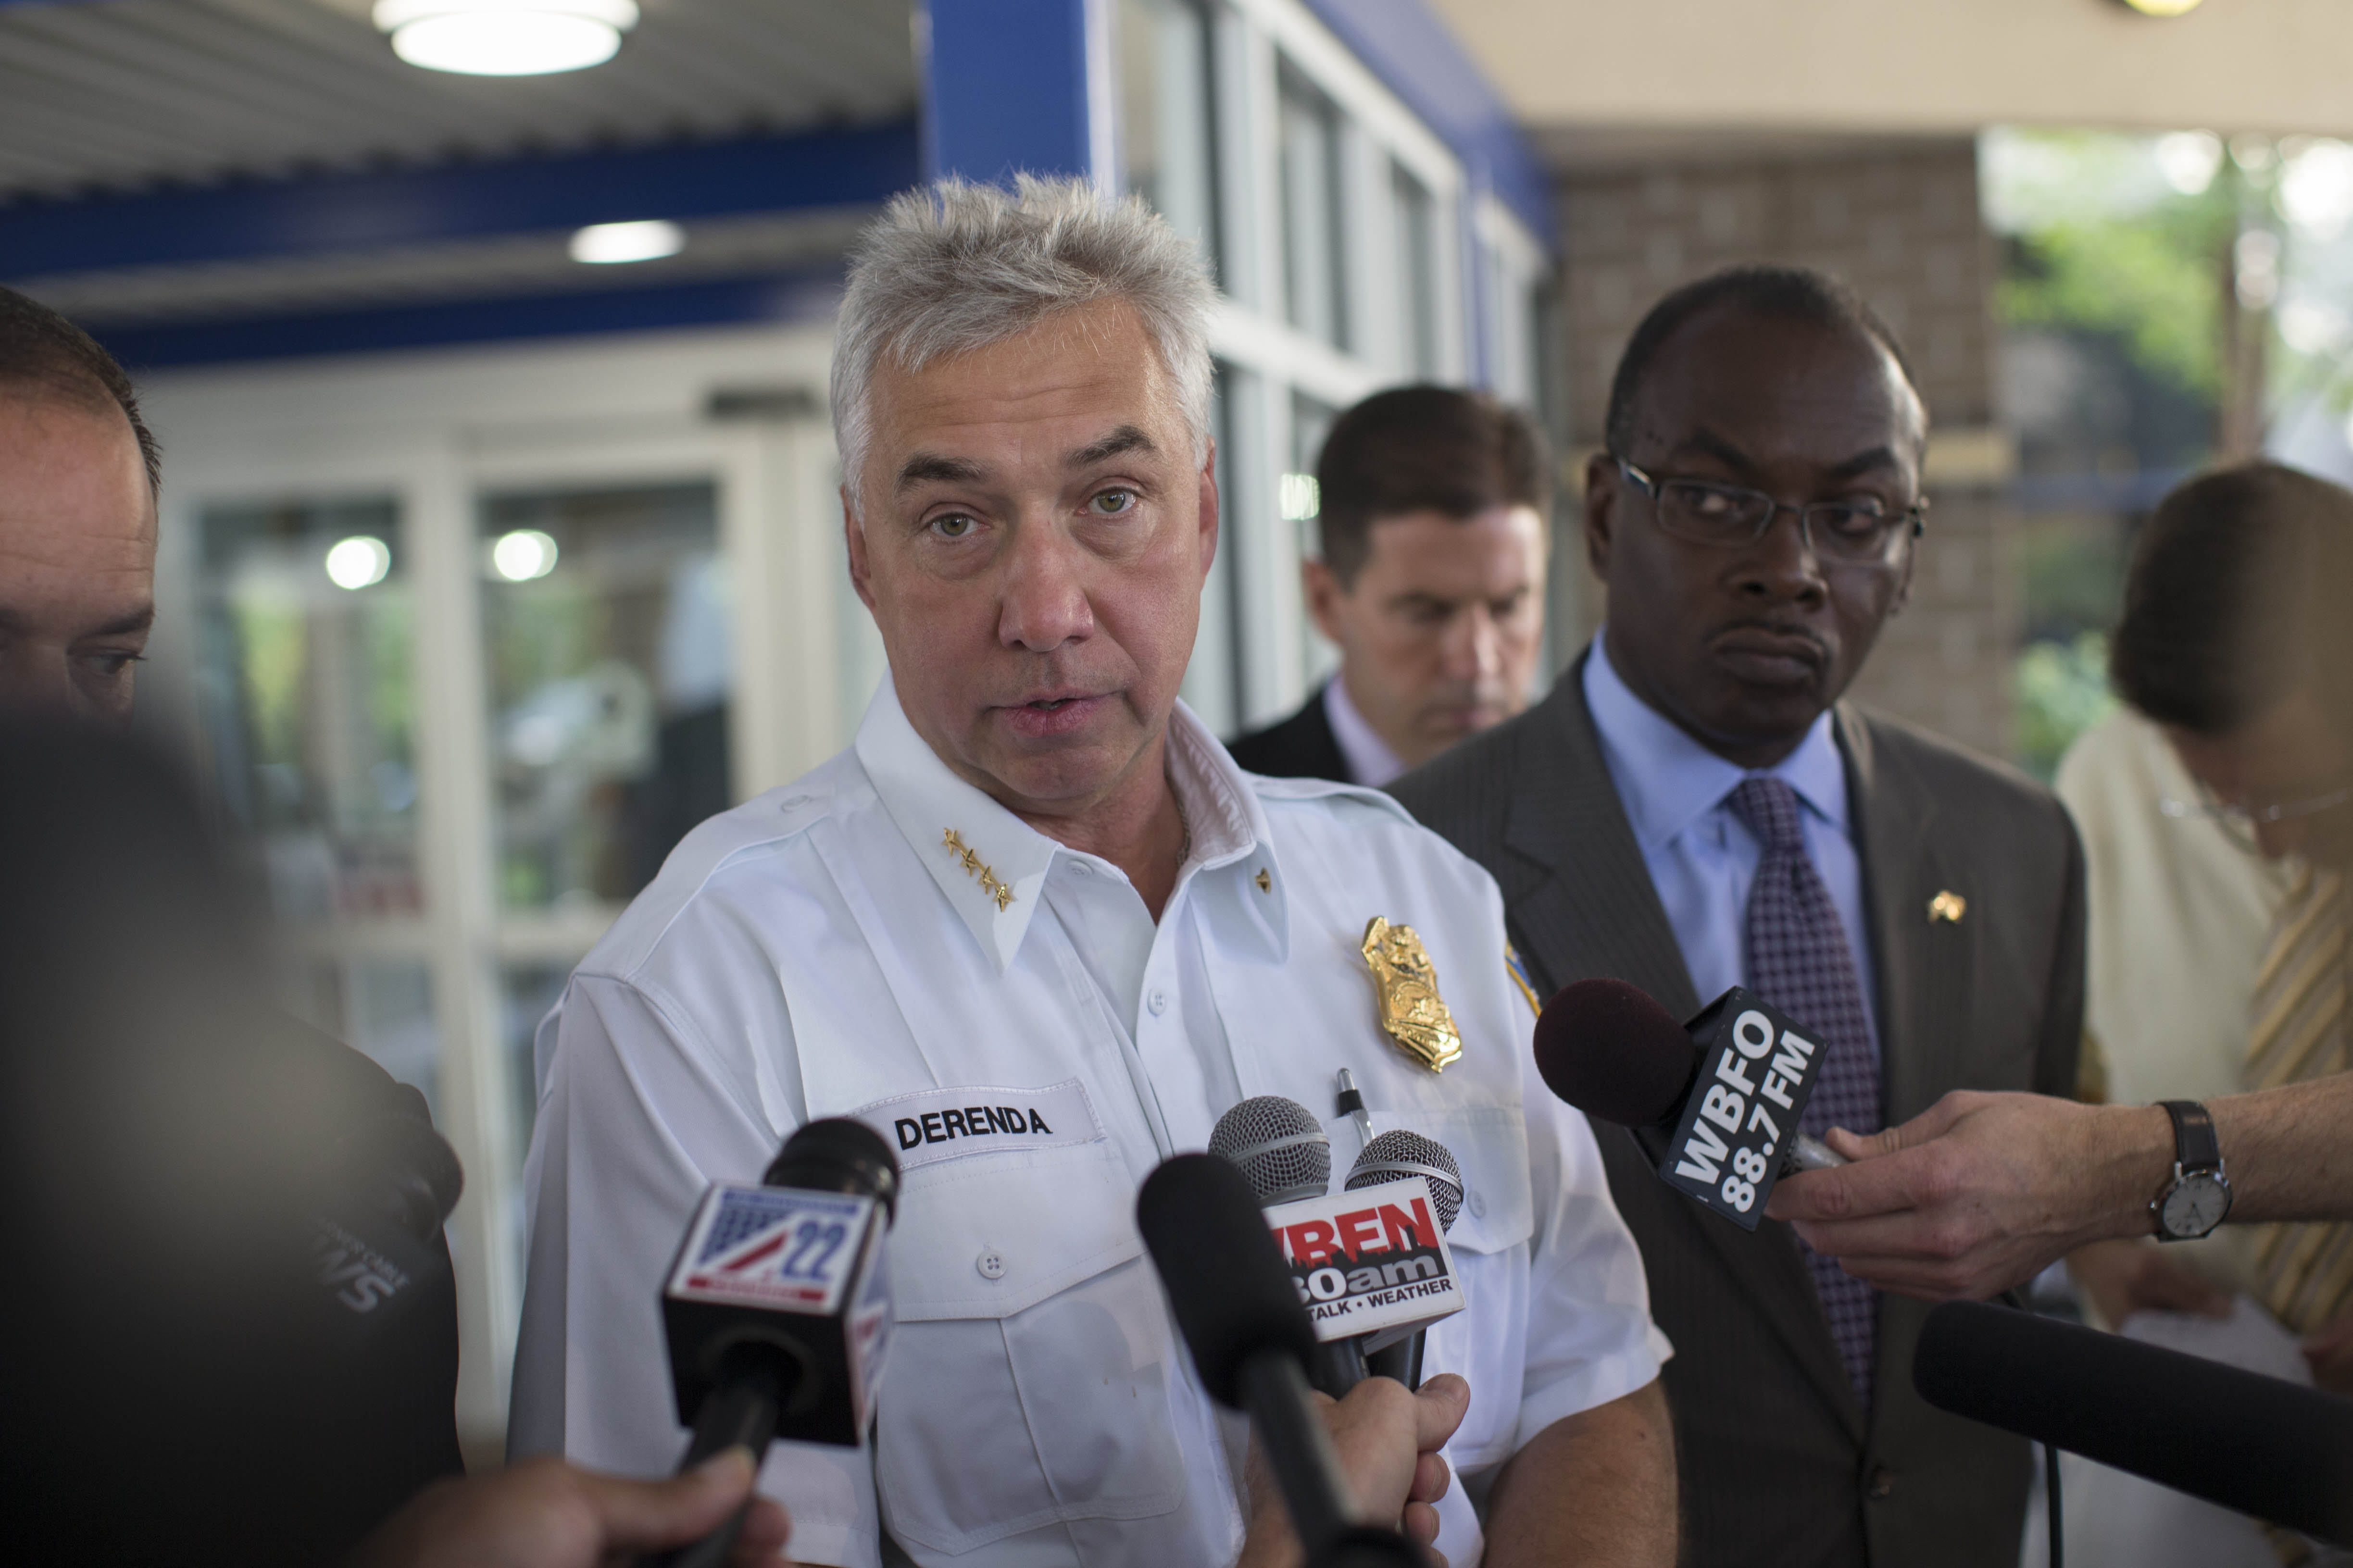 Buffalo Mayor Byron Brown and Police Commissioner Daniel Derenda hold a press conference concerning the shooting last night of 8-year-old Donnell Bibbes outside Children's Hospital, where the boy is listed in critical condition and is currently undergoing his second surgery, Friday, Aug. 26, 2016.  (Derek Gee/Buffalo News)